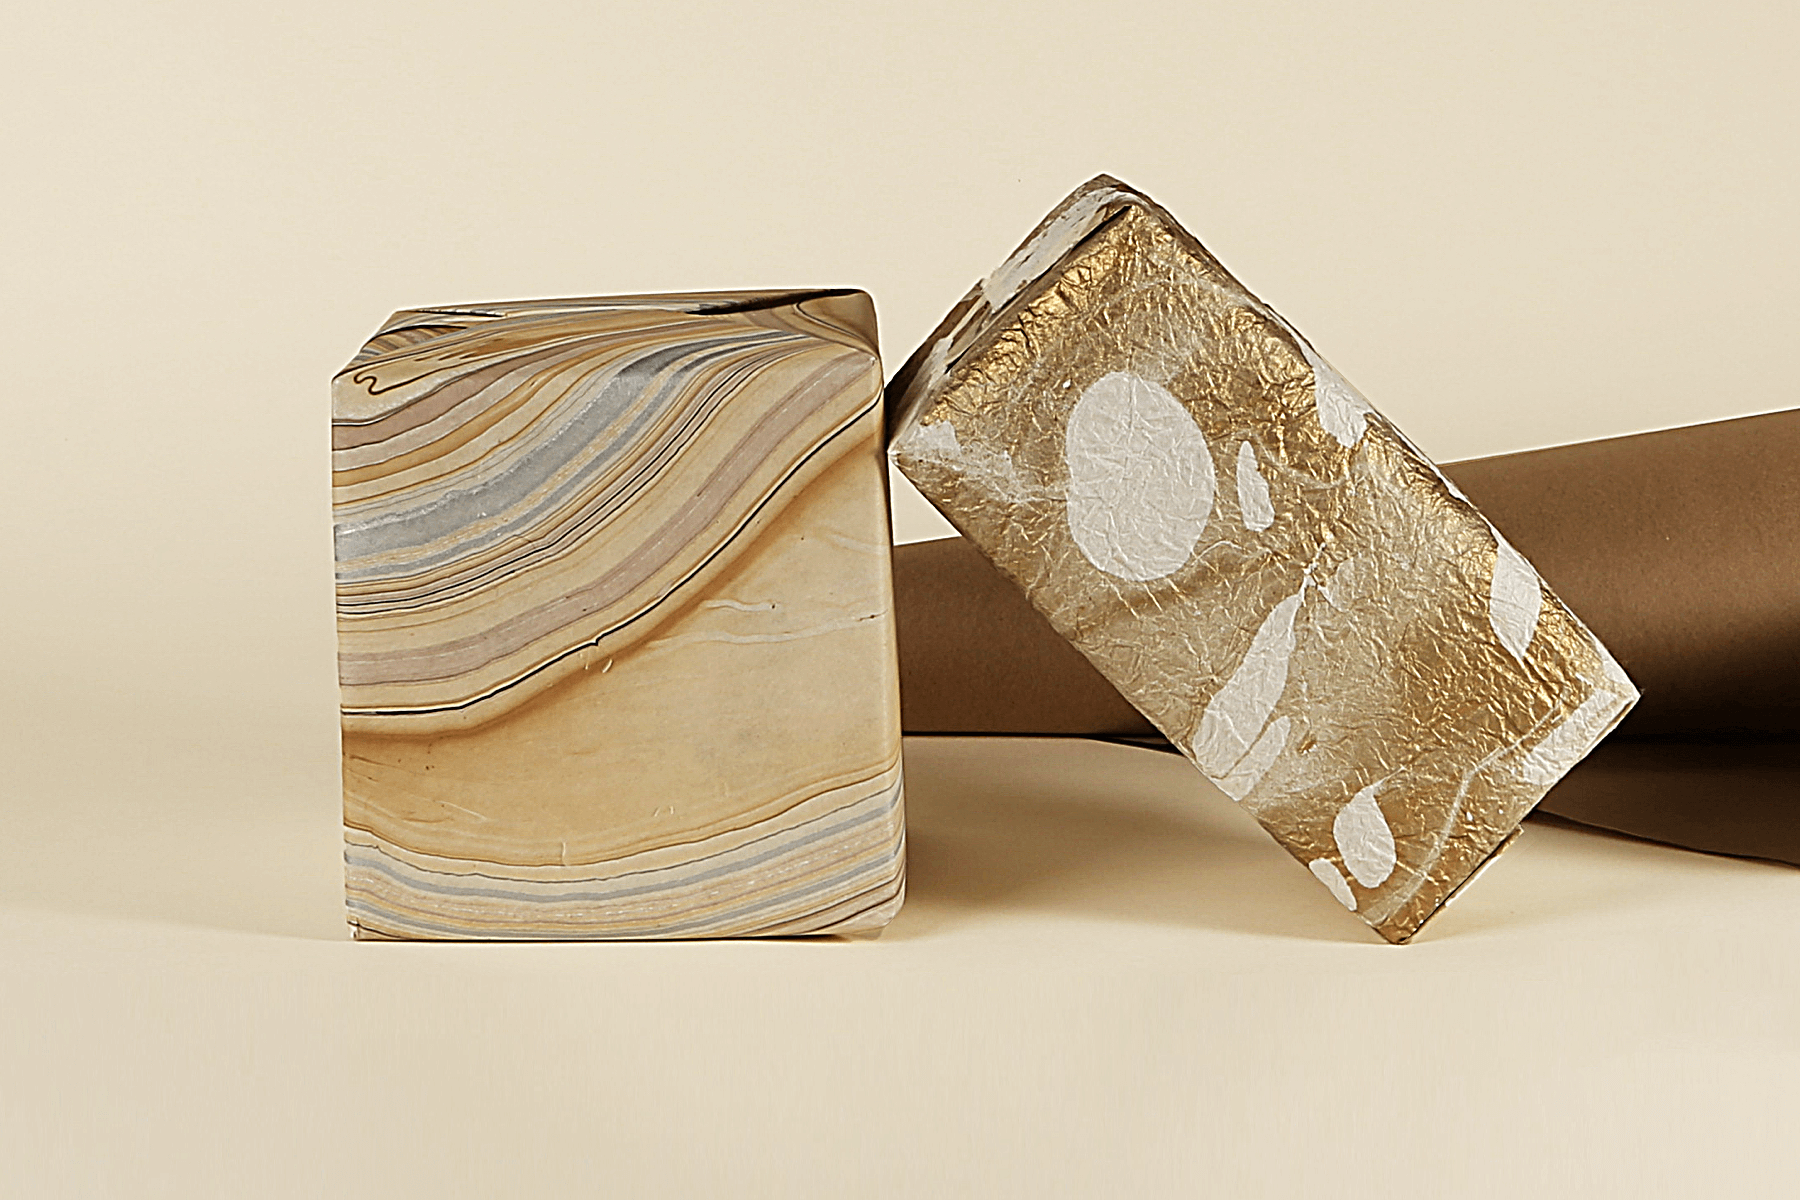 Stack of eco-friendly wrapped gifts on a beige background